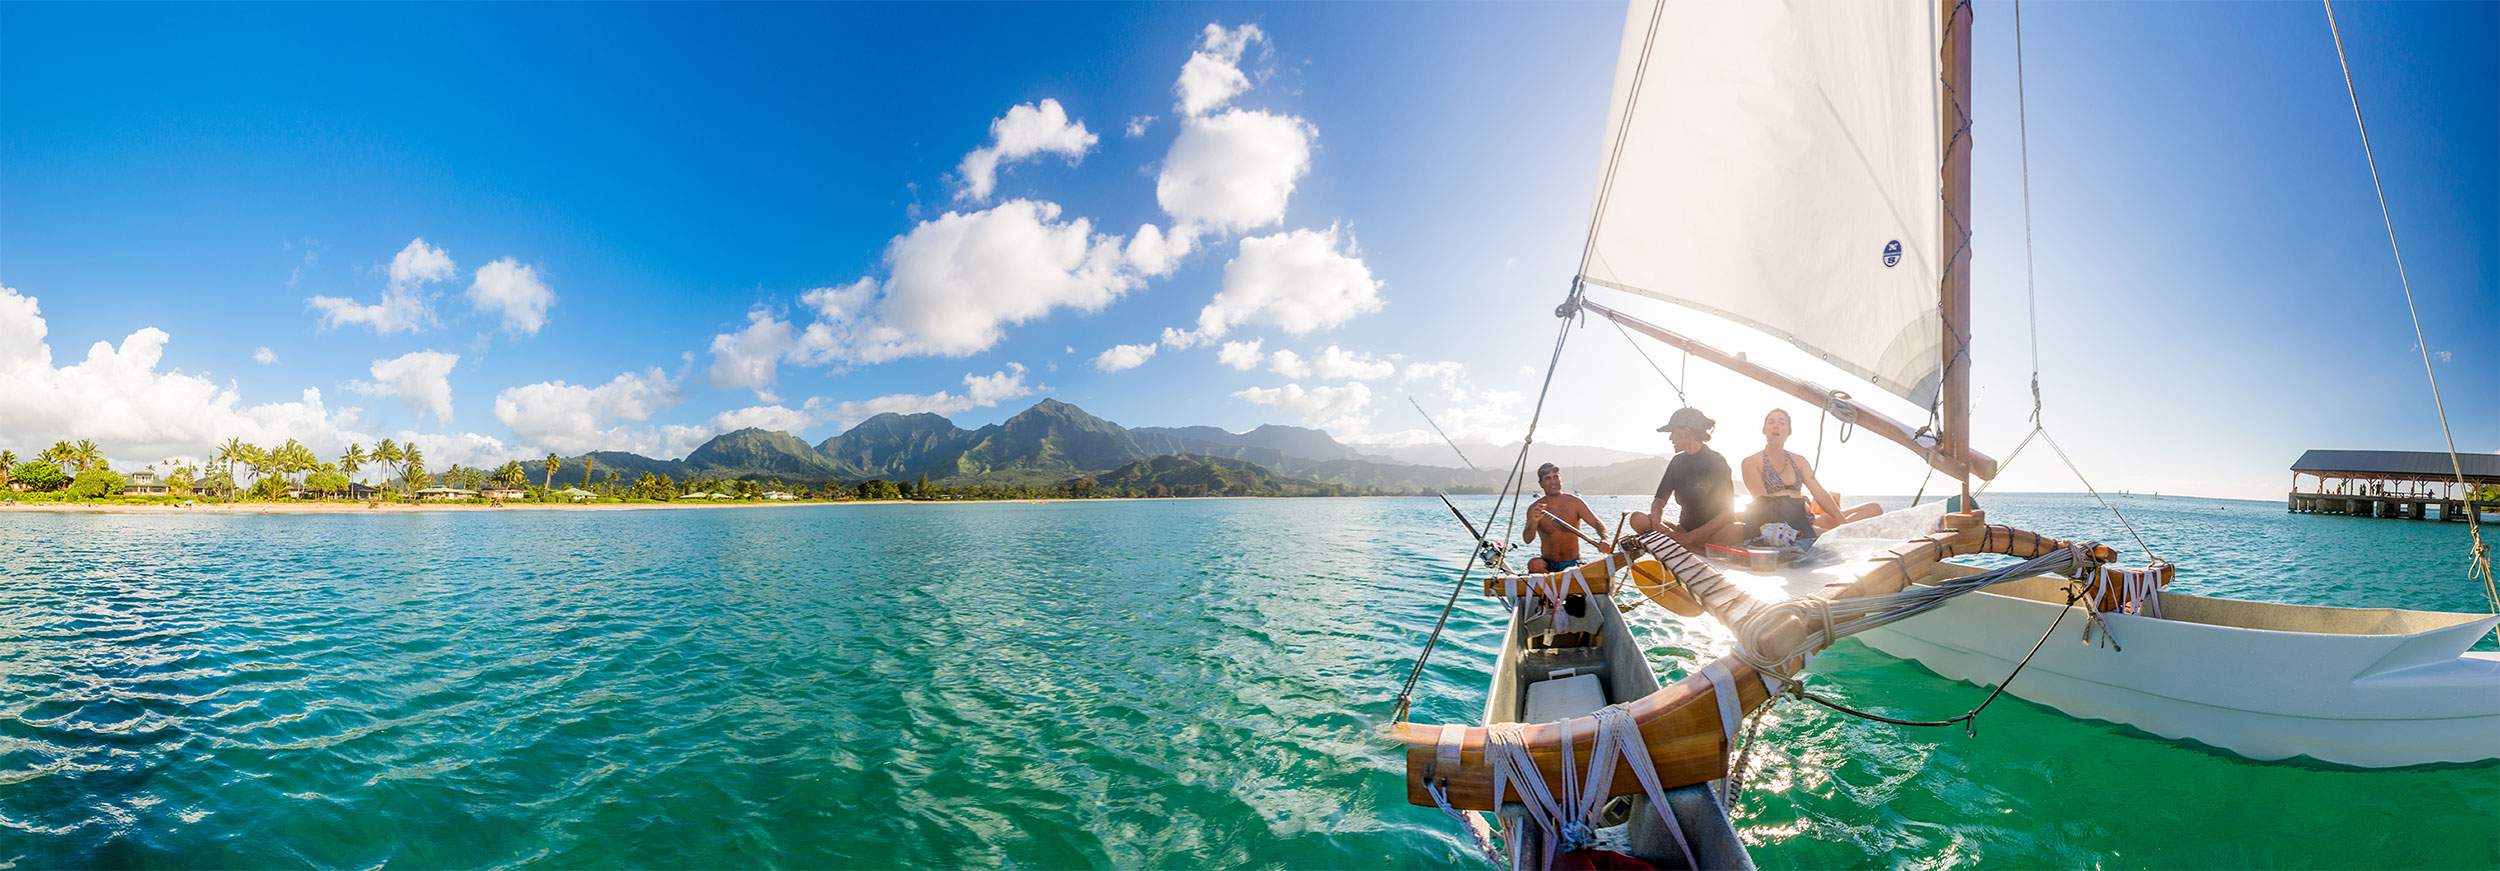 View the services offered by Kauai Elements